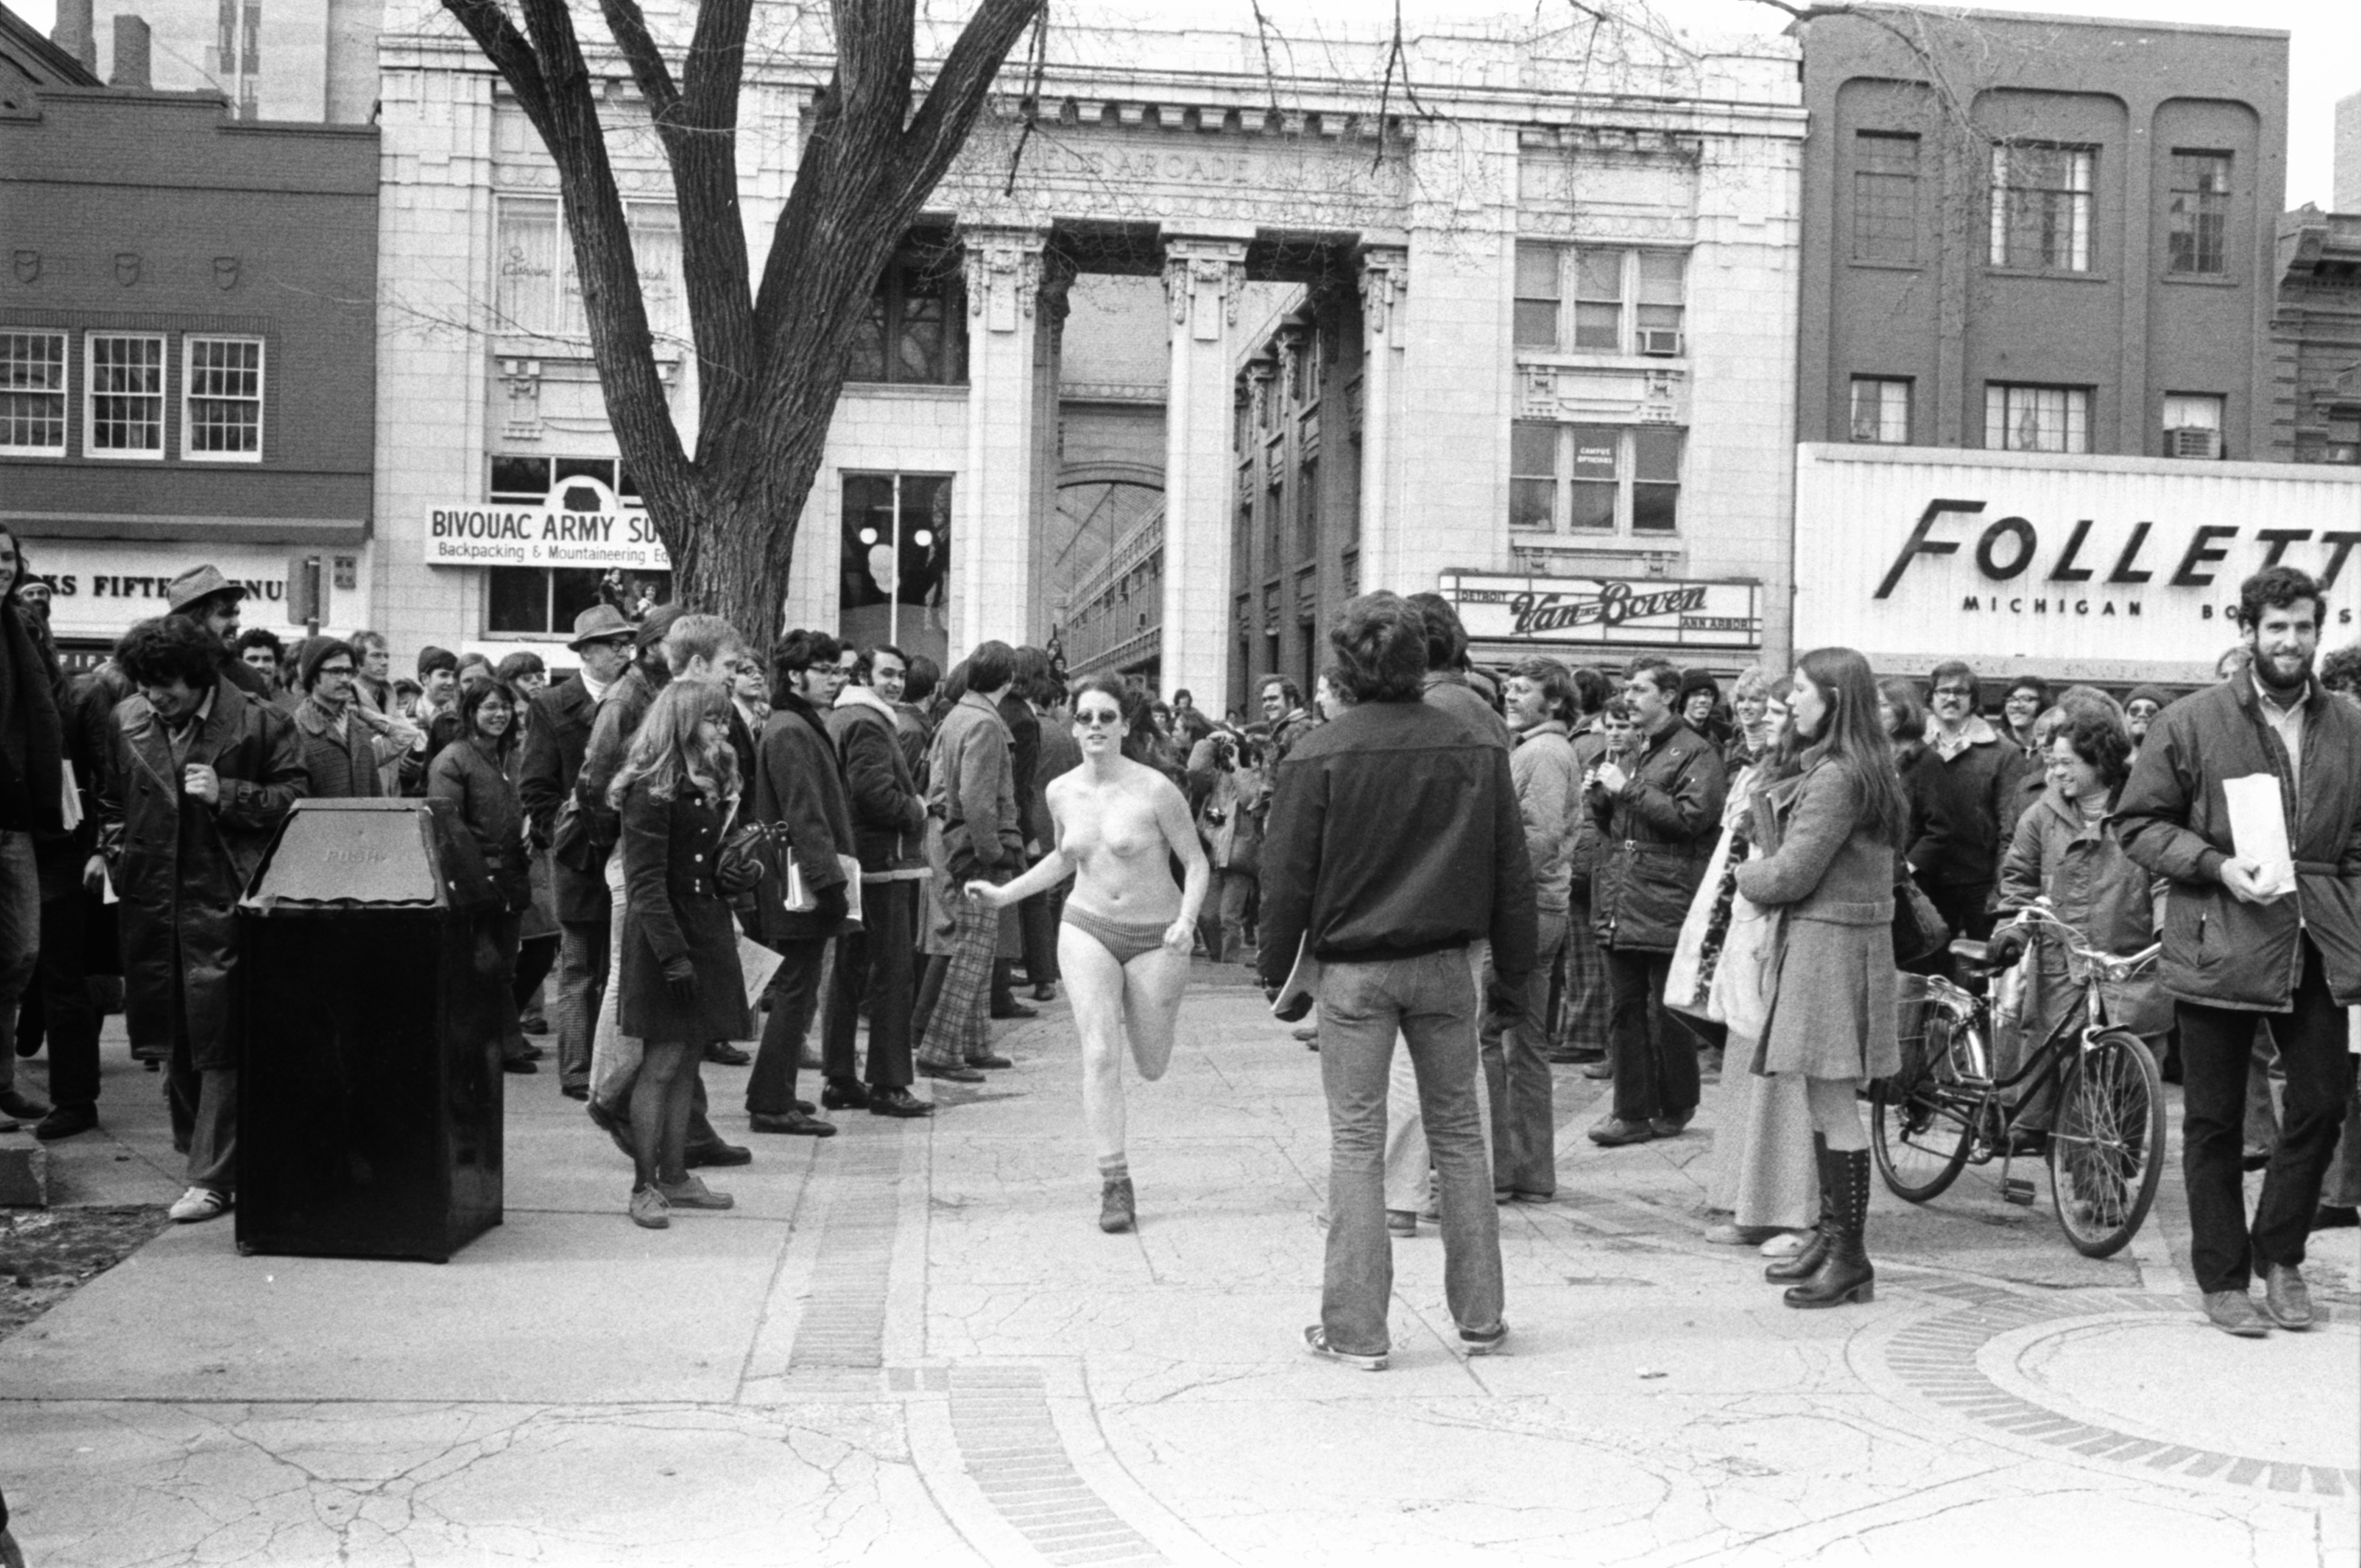 A streaker runs on campus near Nickels Arcade, March 1974 image